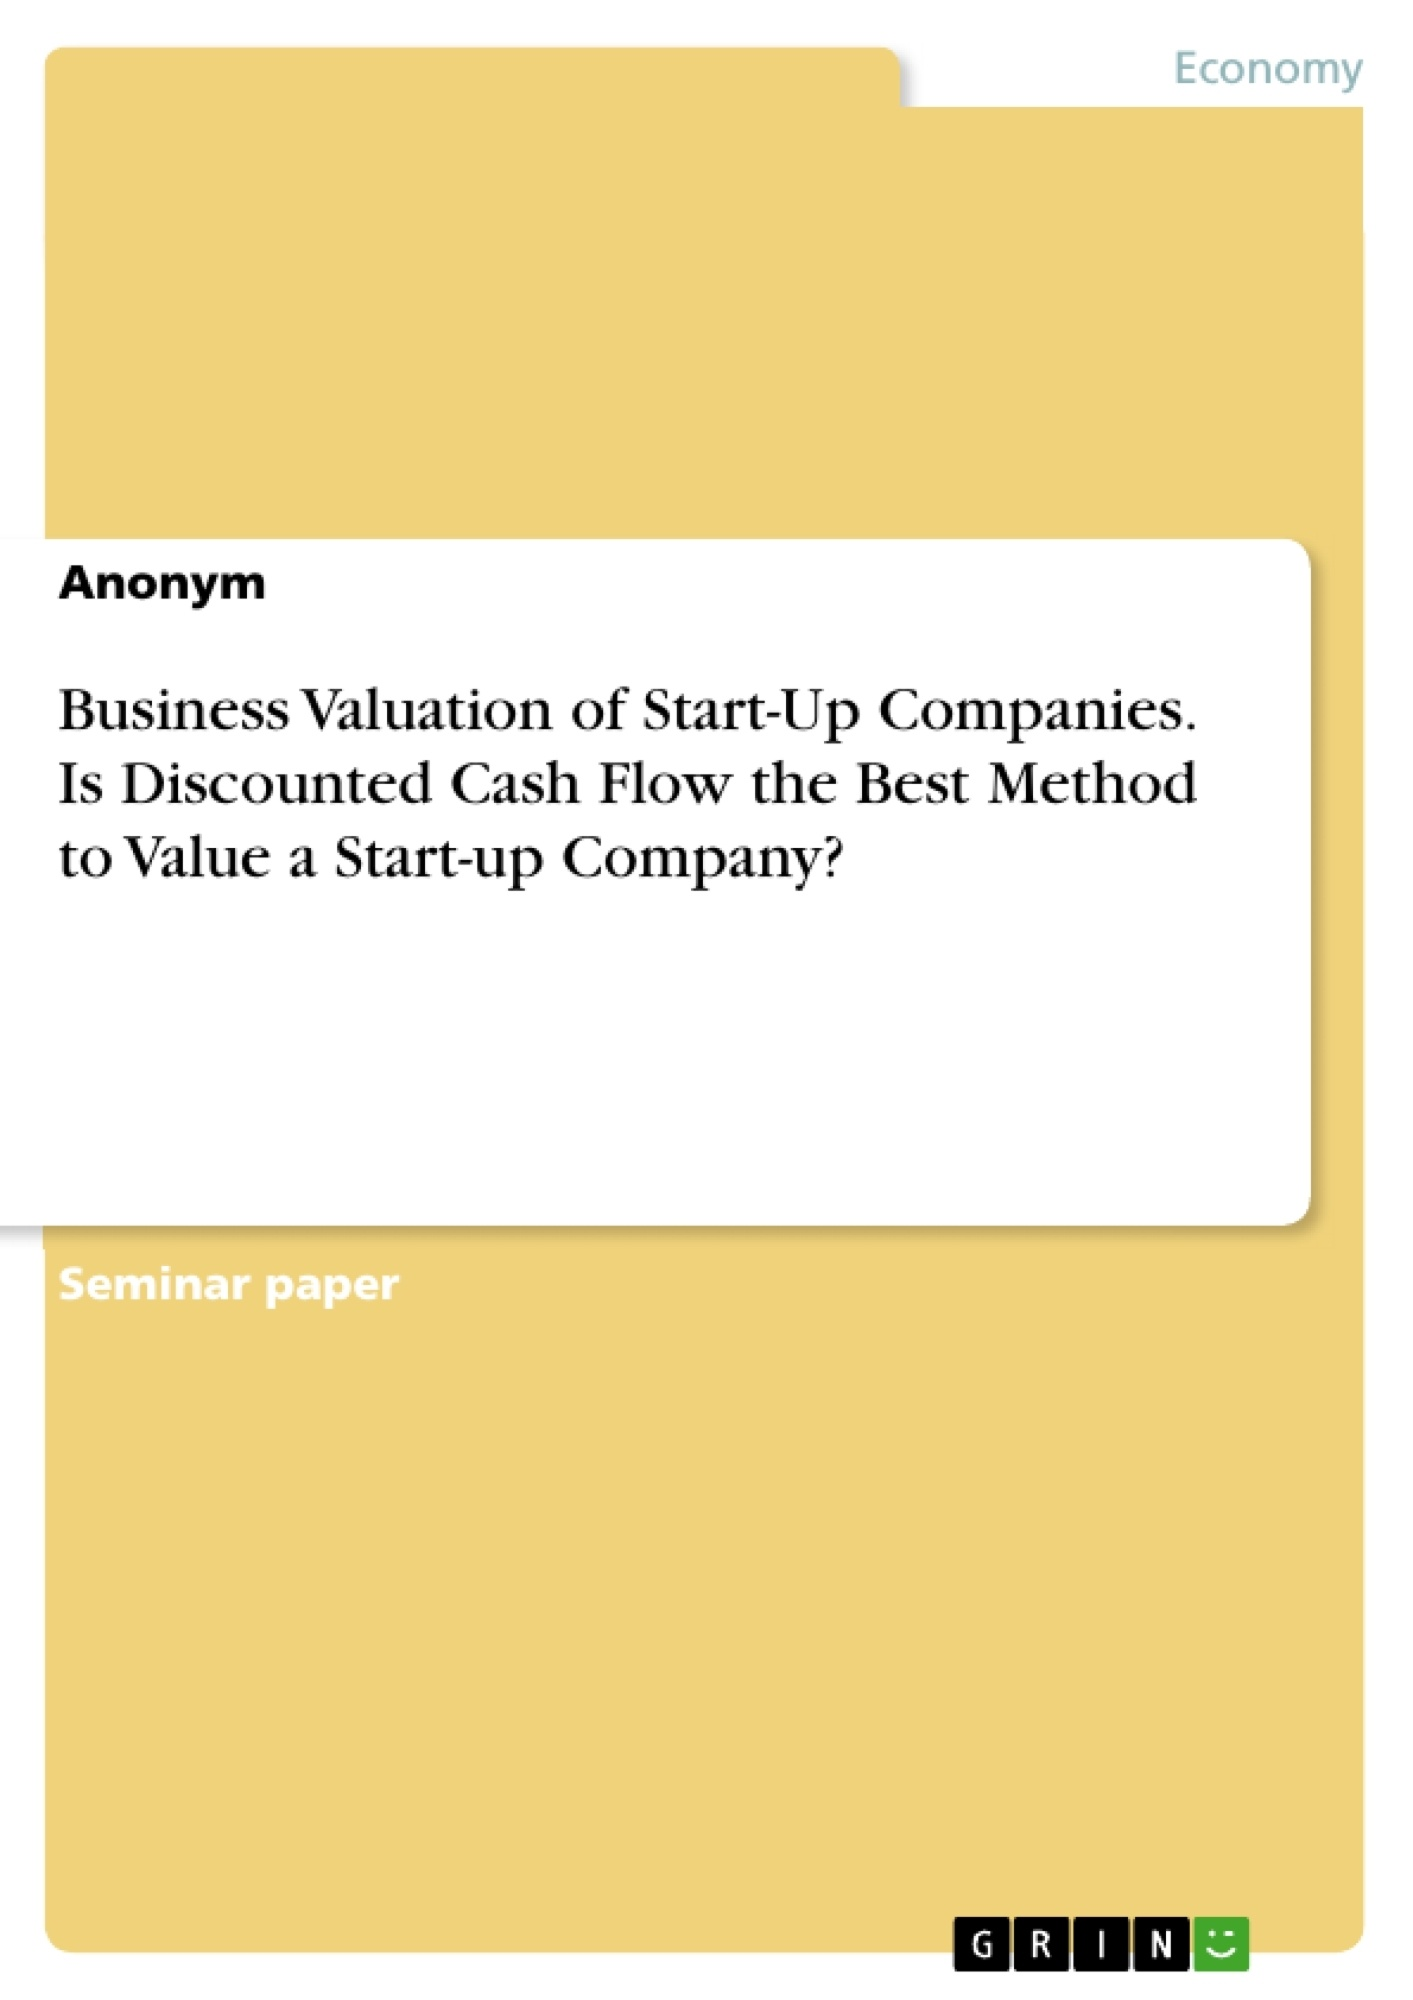 Title: Business Valuation of Start-Up Companies. Is Discounted Cash Flow the Best Method to Value a Start-up Company?